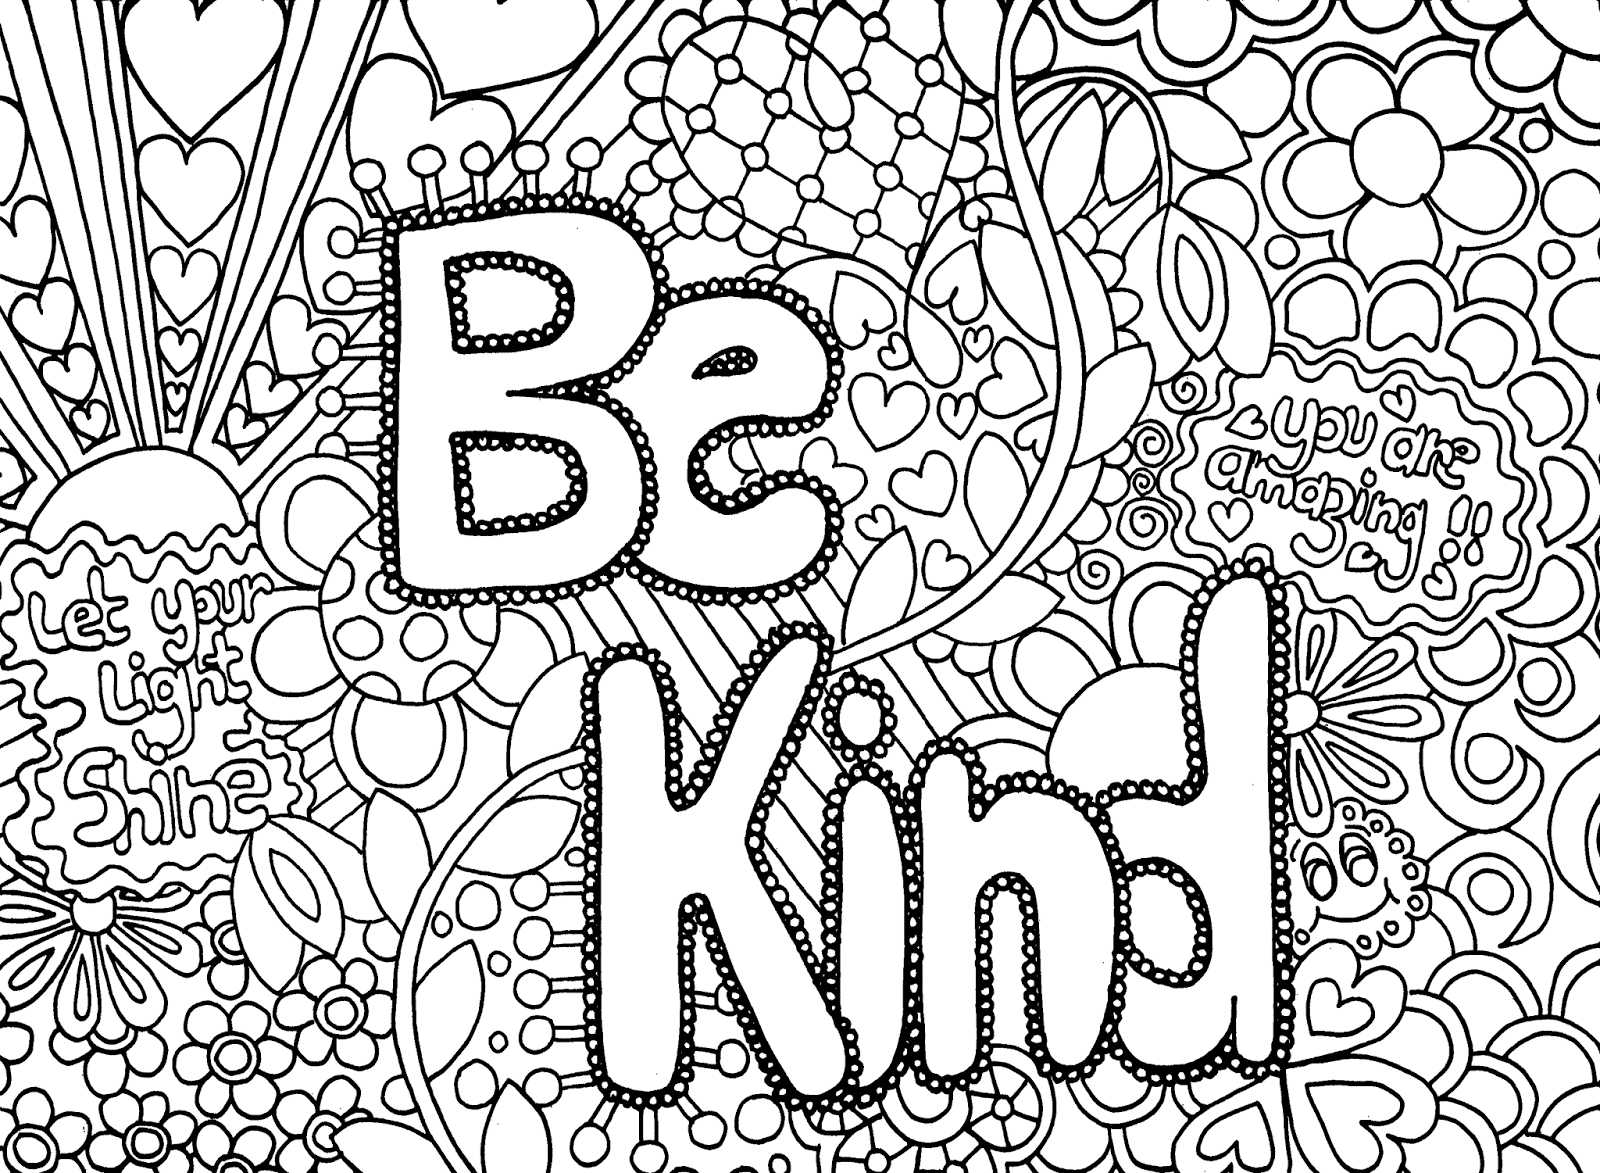 Hard Coloring Pages Free Large Images Detailed Coloring Pages Coloring Pages For Teenagers Abstract Coloring Pages